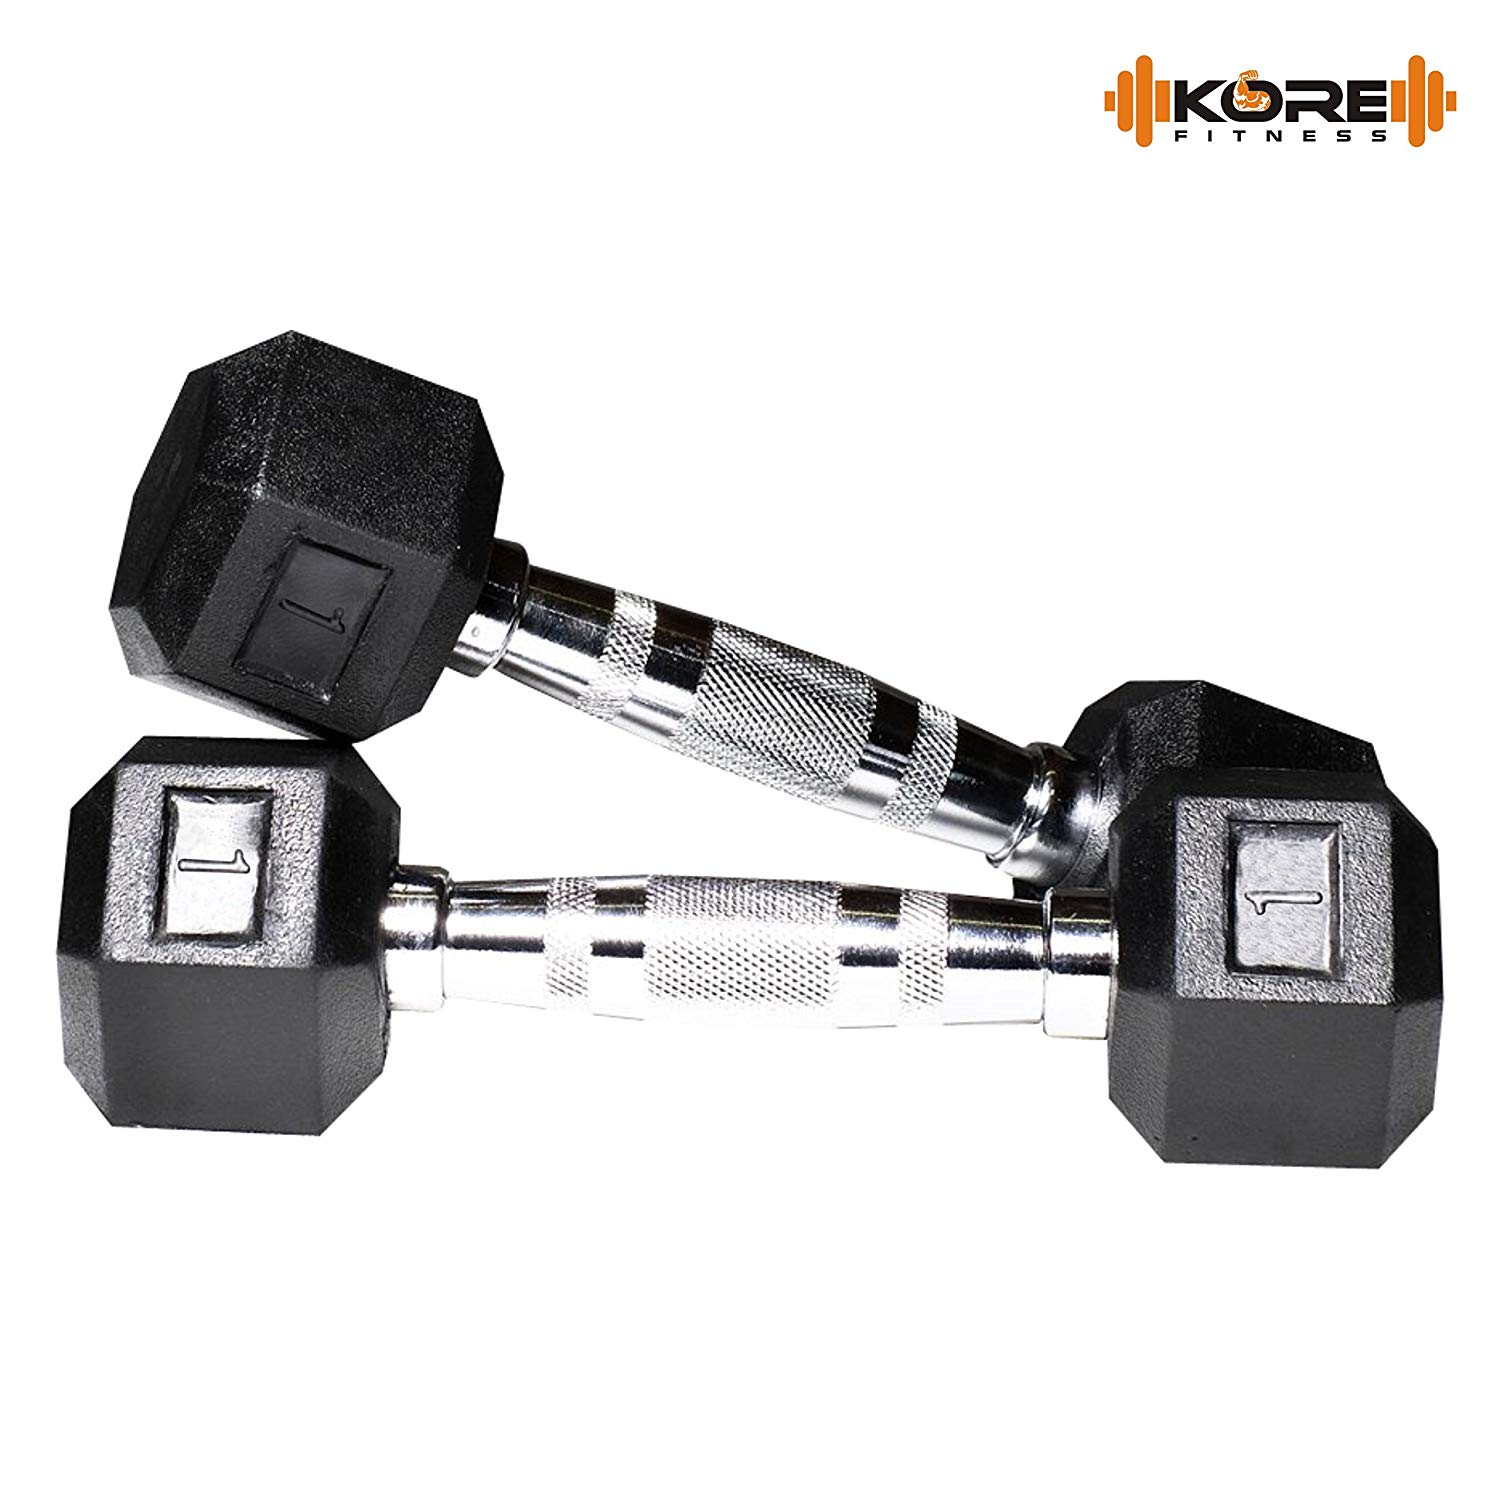 KORE DM 16 HEX-COMBO Dumbbells Kits